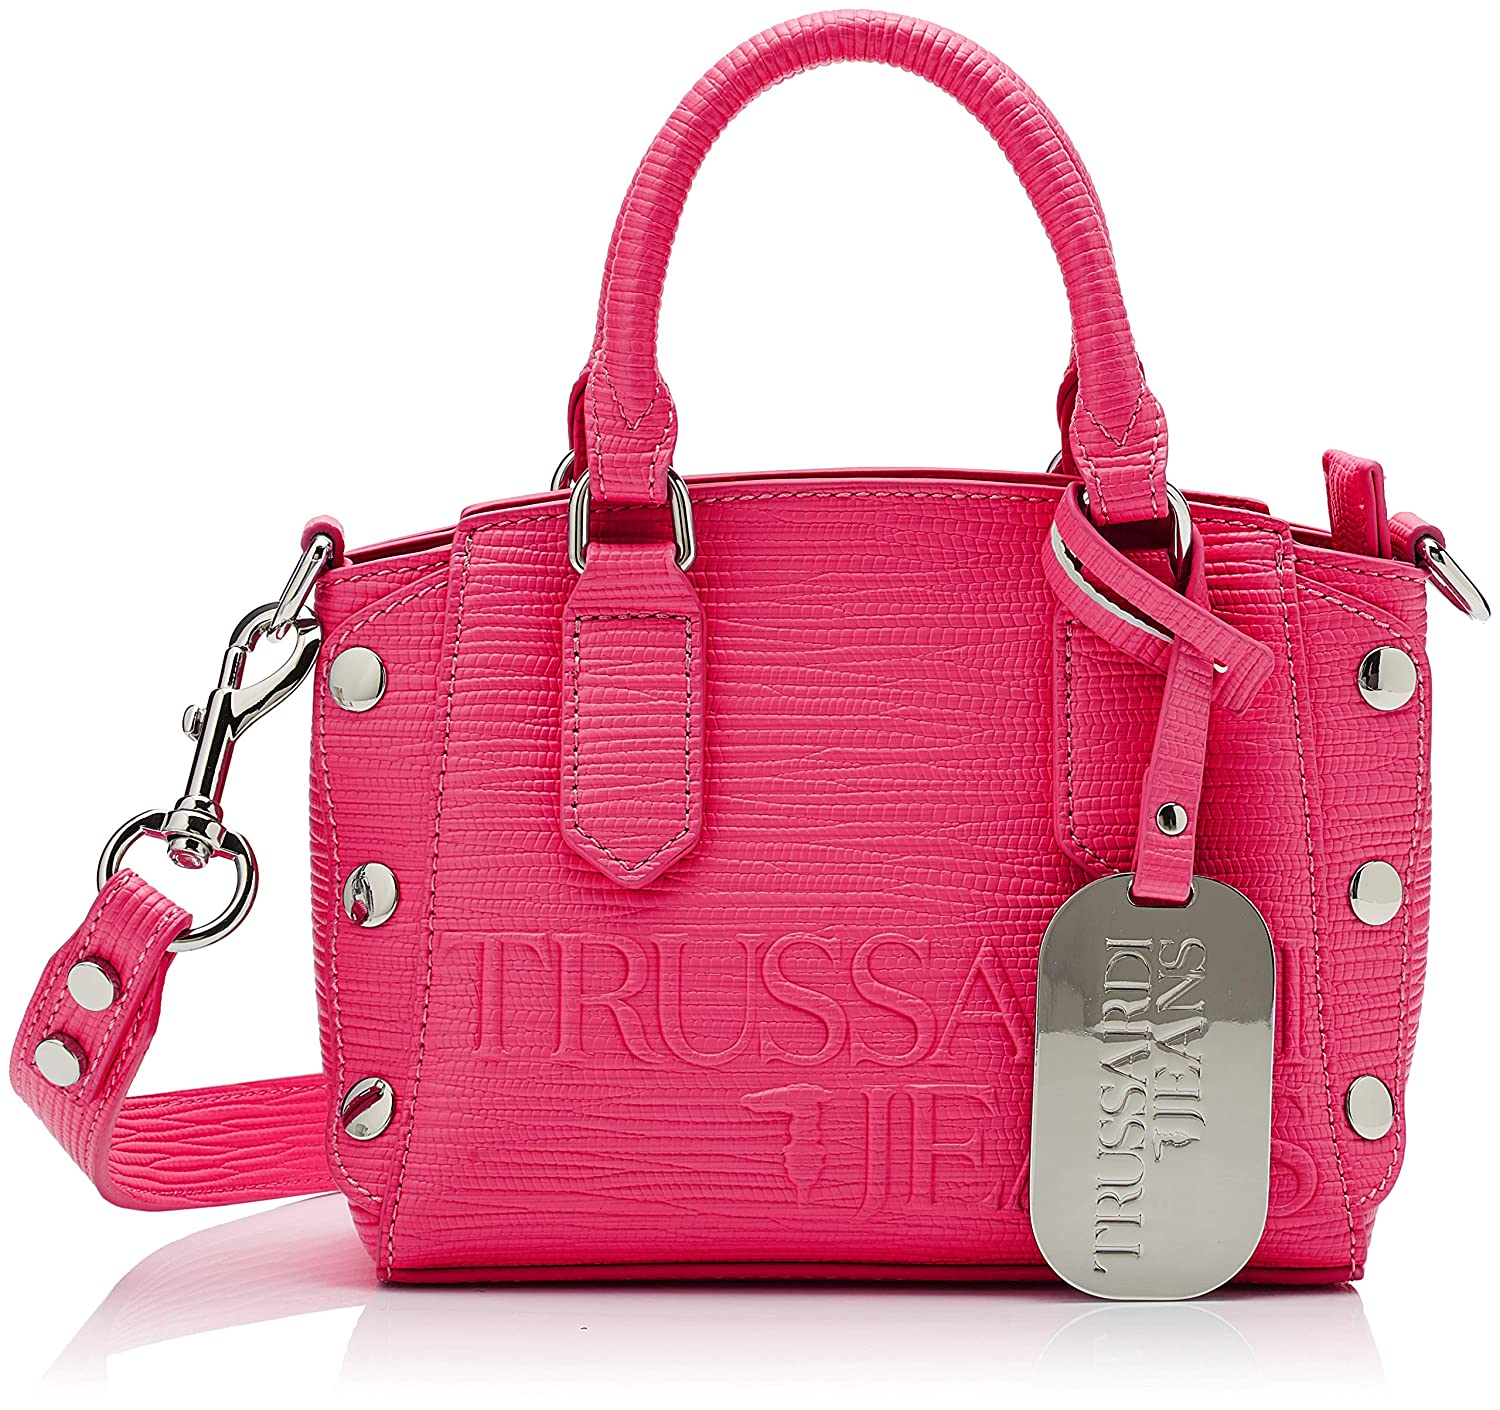 Multicolour (Fuchsia Beige Red) Trussardi Jeans Women's Melly Tote Xs Tote Bag